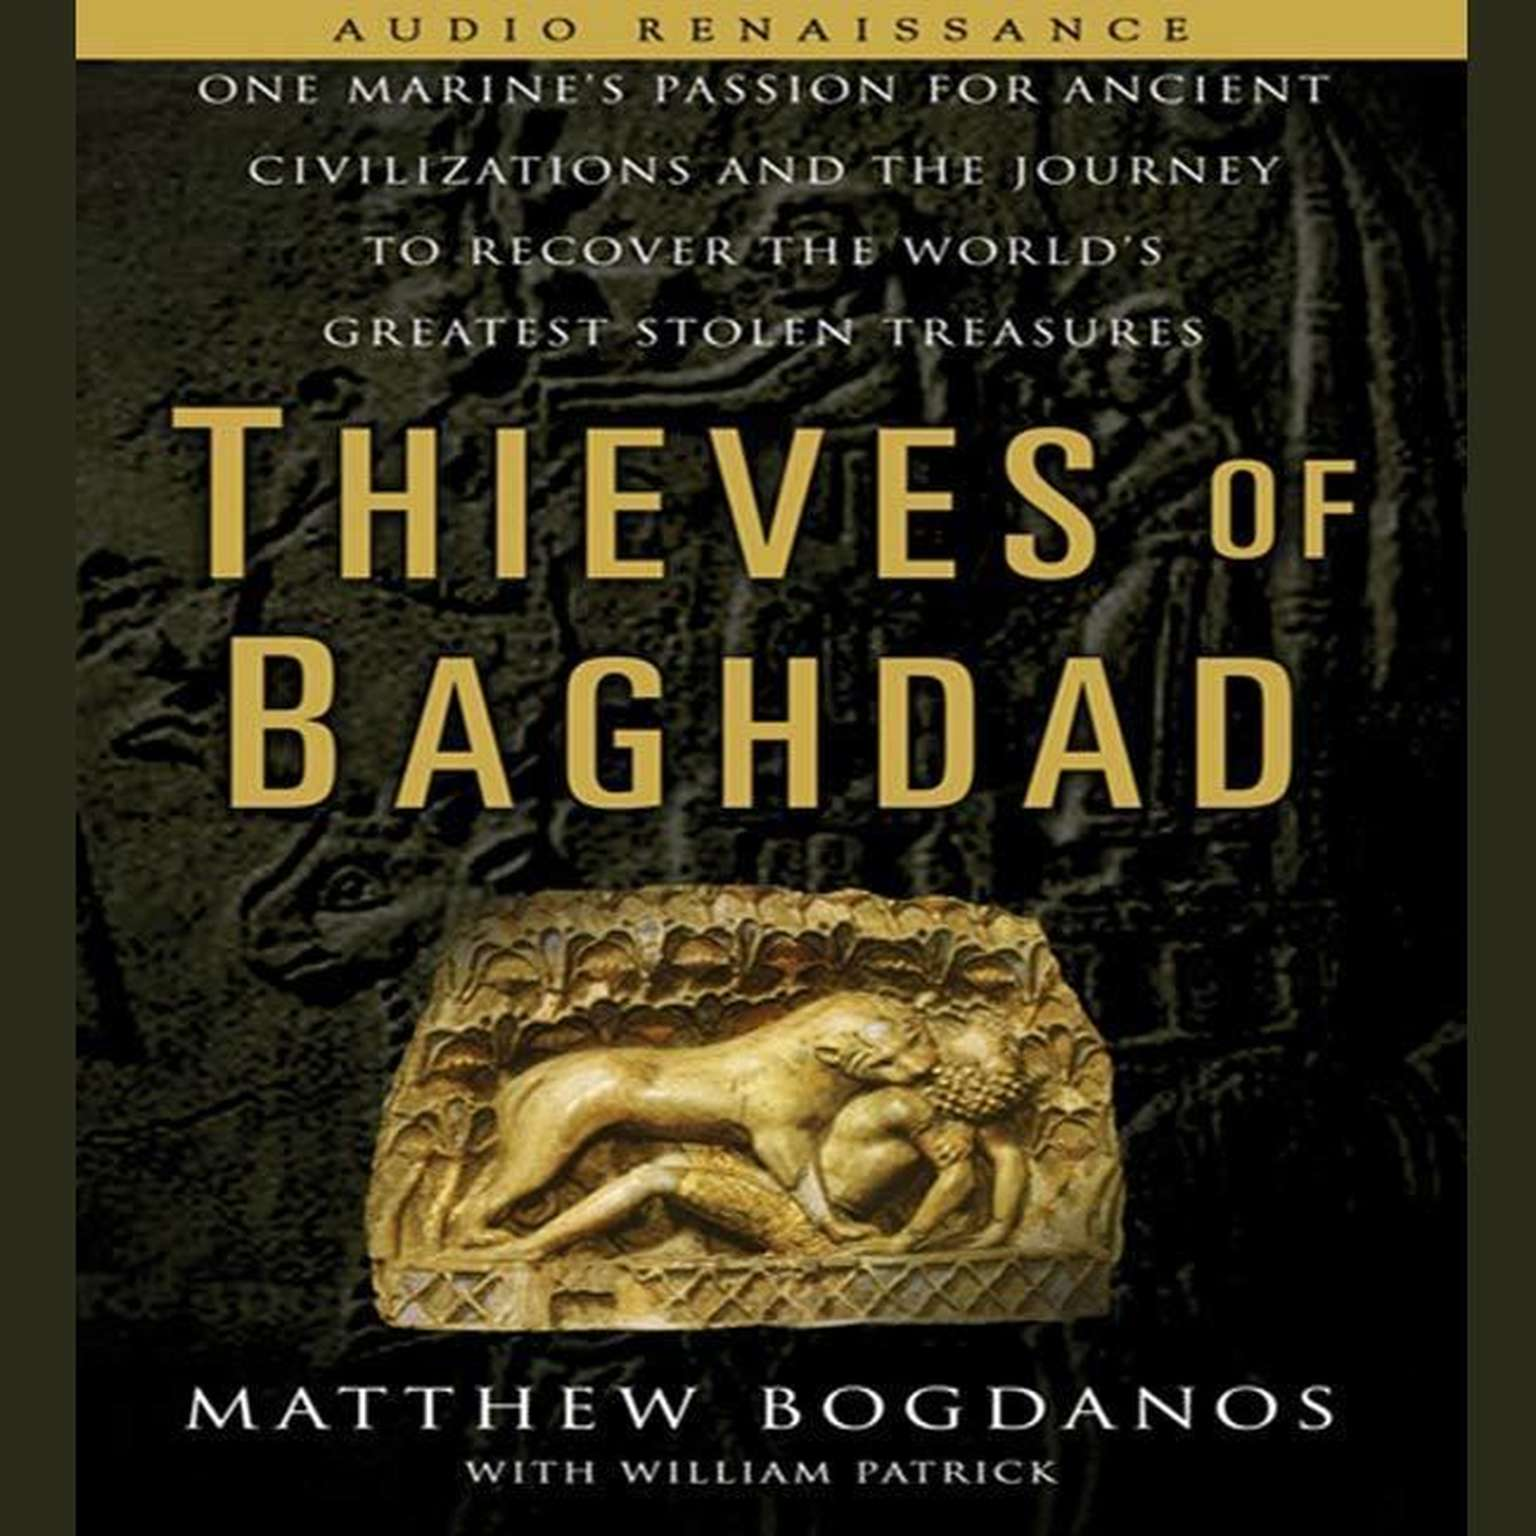 Printable Thieves of Baghdad: One Marine's Passion for Ancient Civilizations and Journey to Recover the World's Greatest Stolen Treasures Audiobook Cover Art